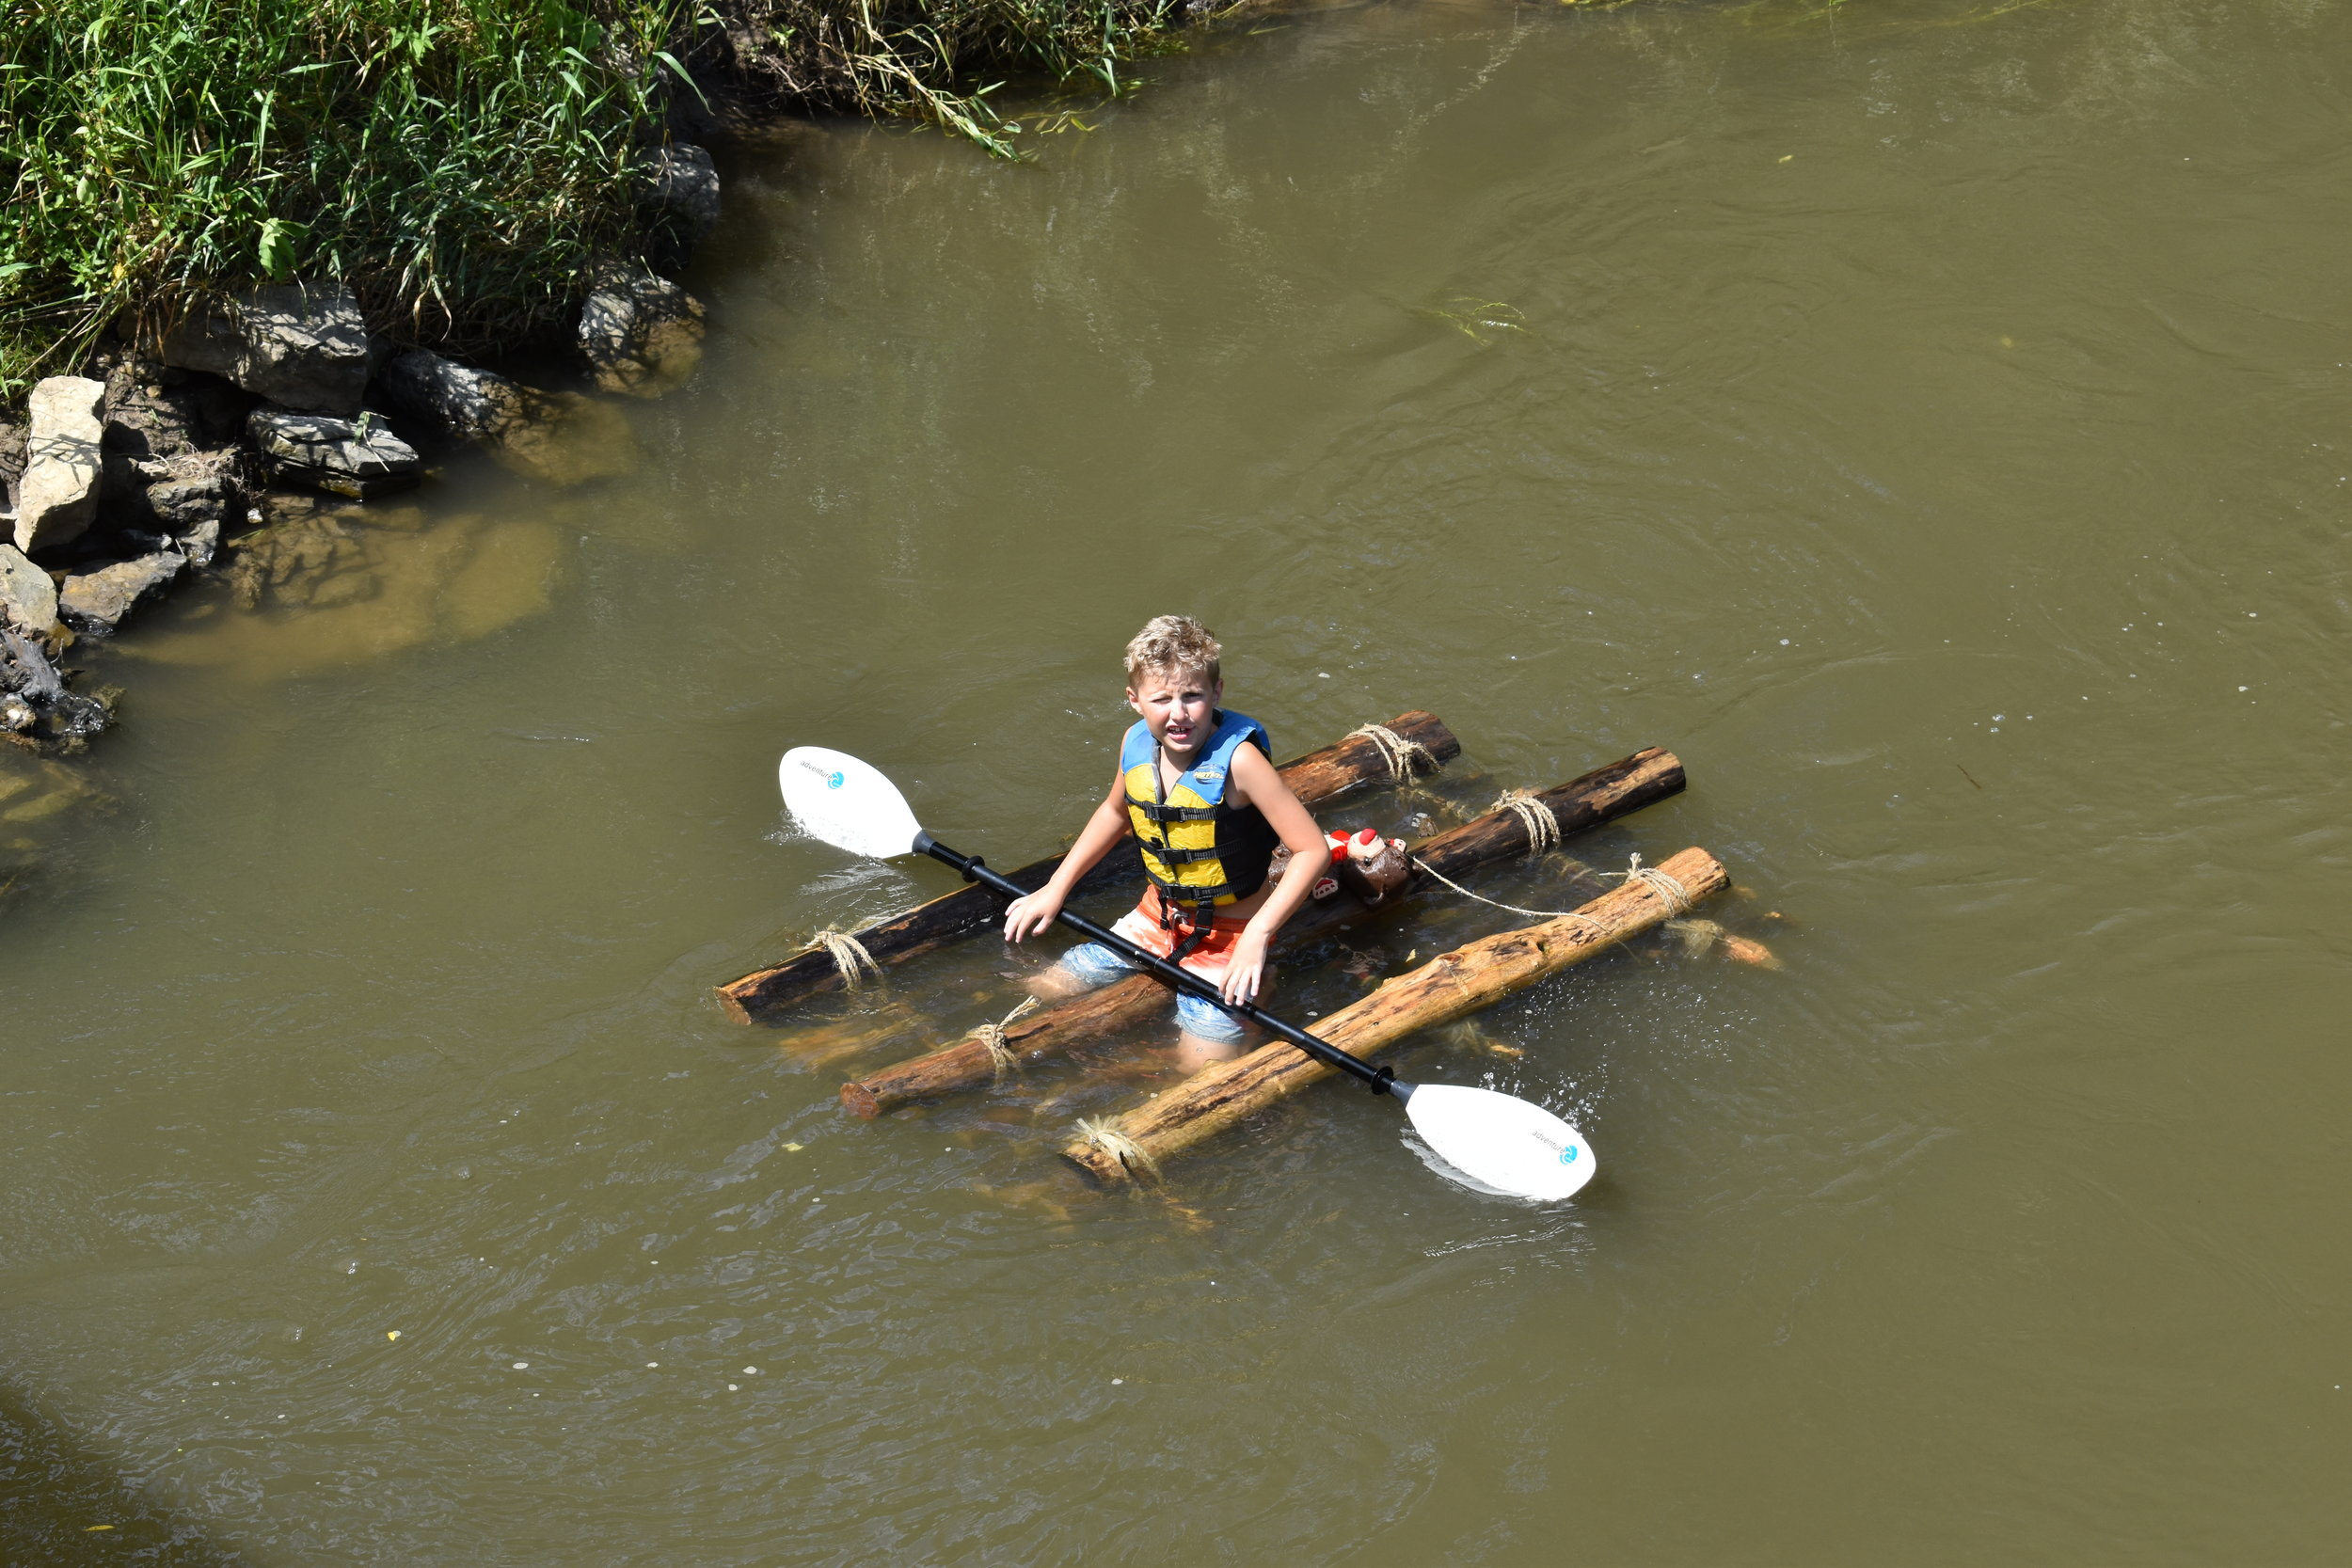 Hixson Katz finishing in first place, his brother not far behind in a canoe